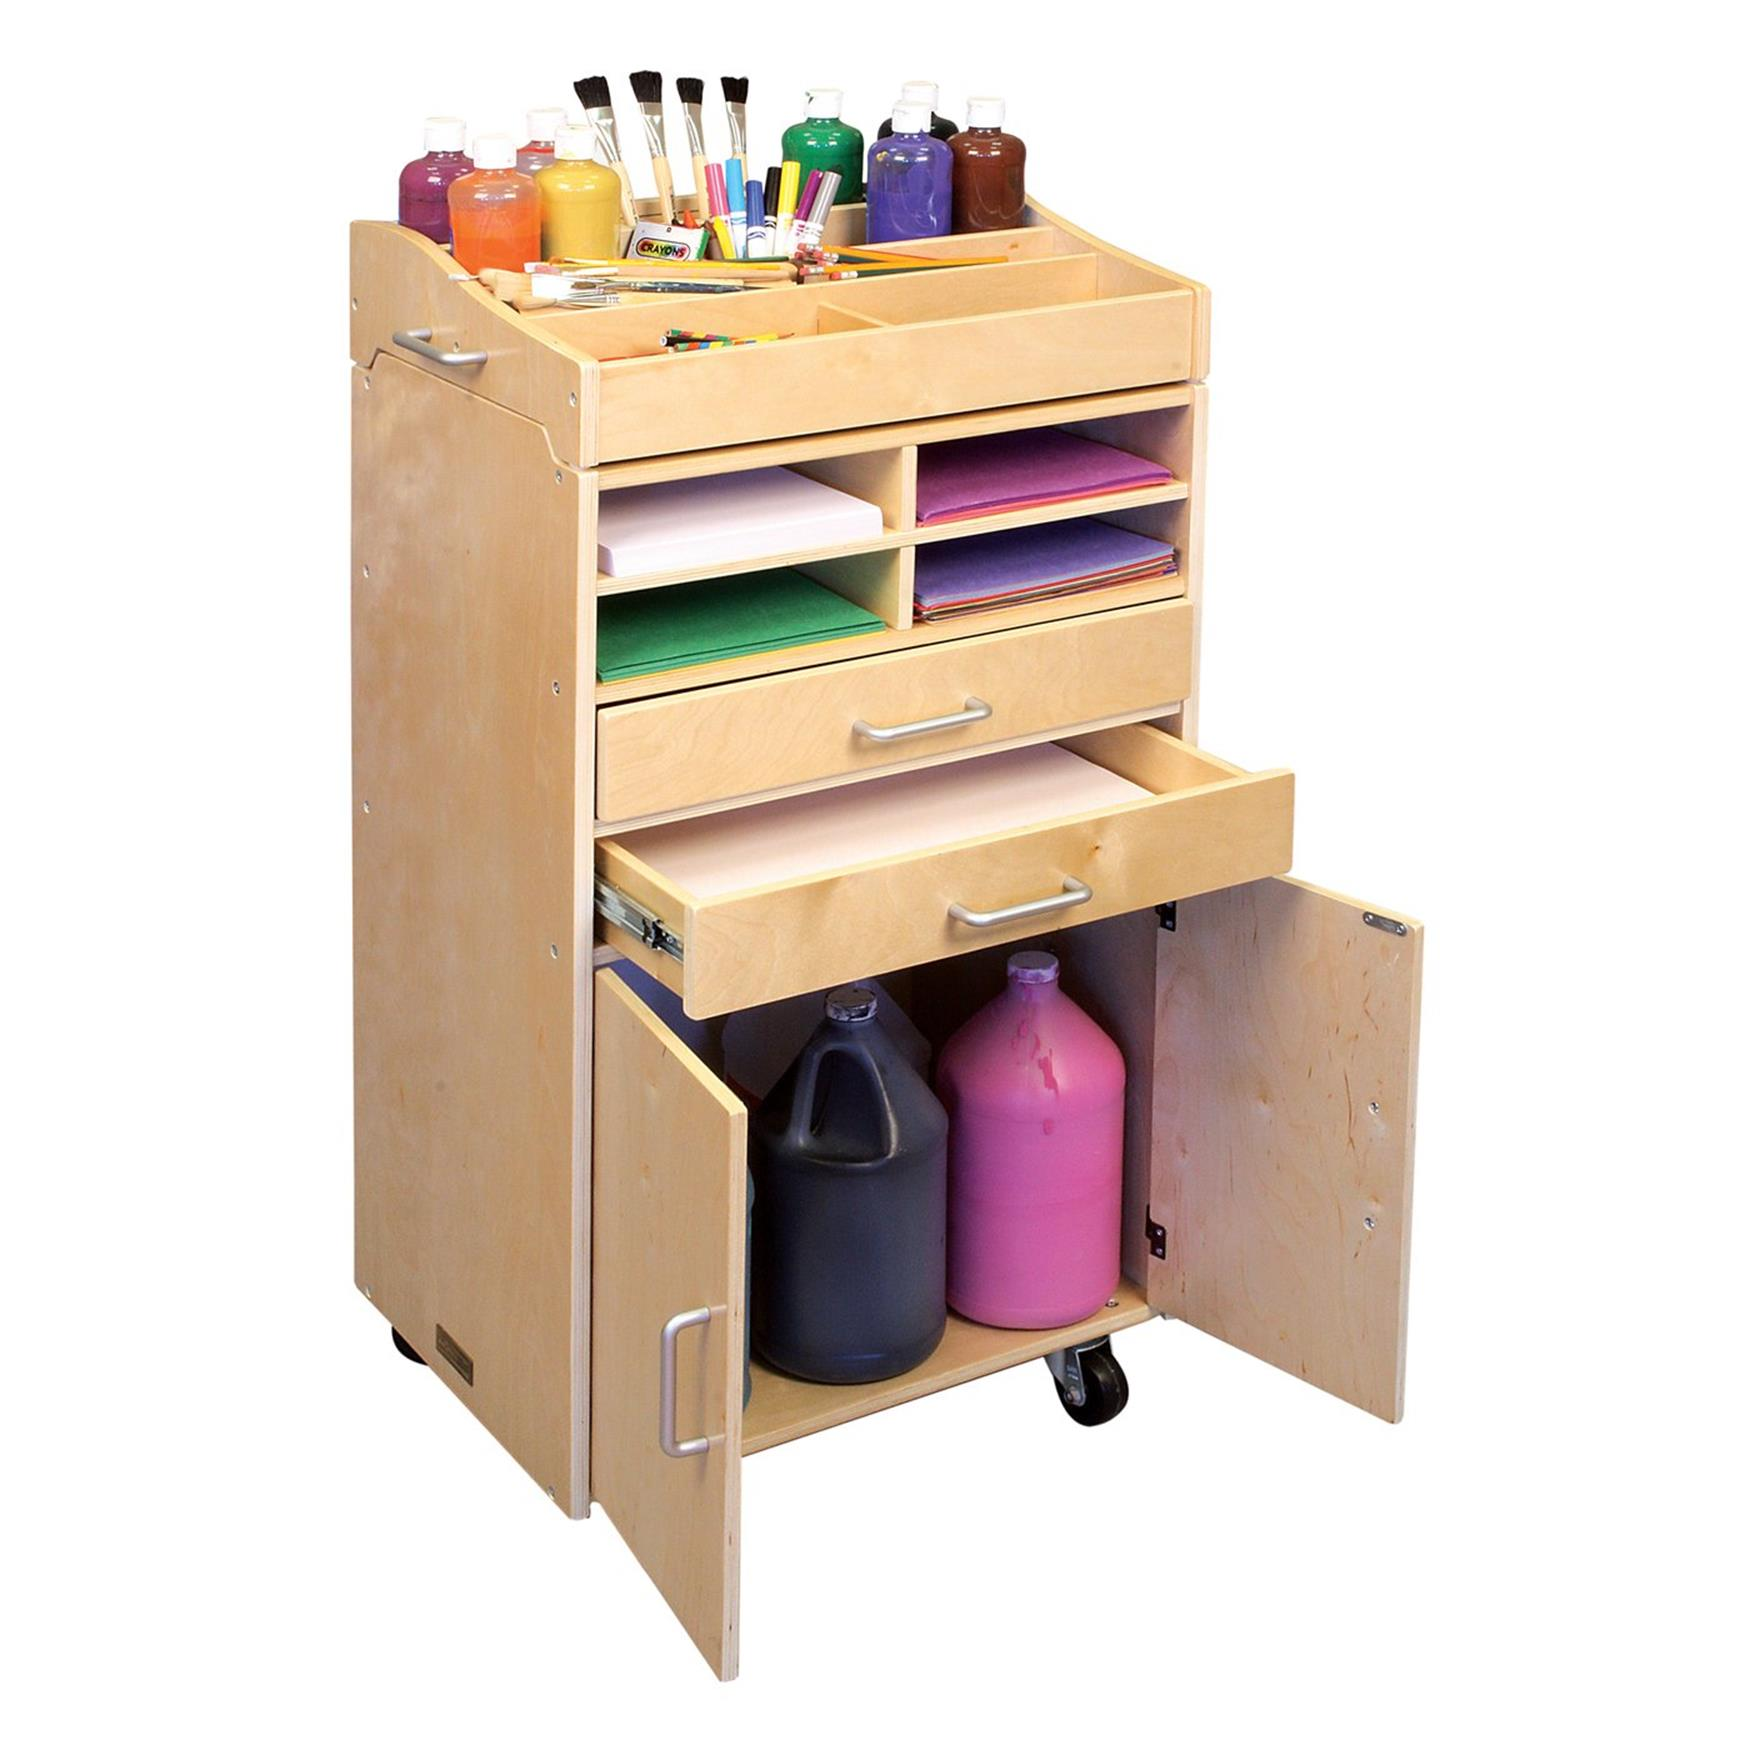 Furniture For Cheap Online: Cheap Craft Room Storage And Organization Furniture Ideas